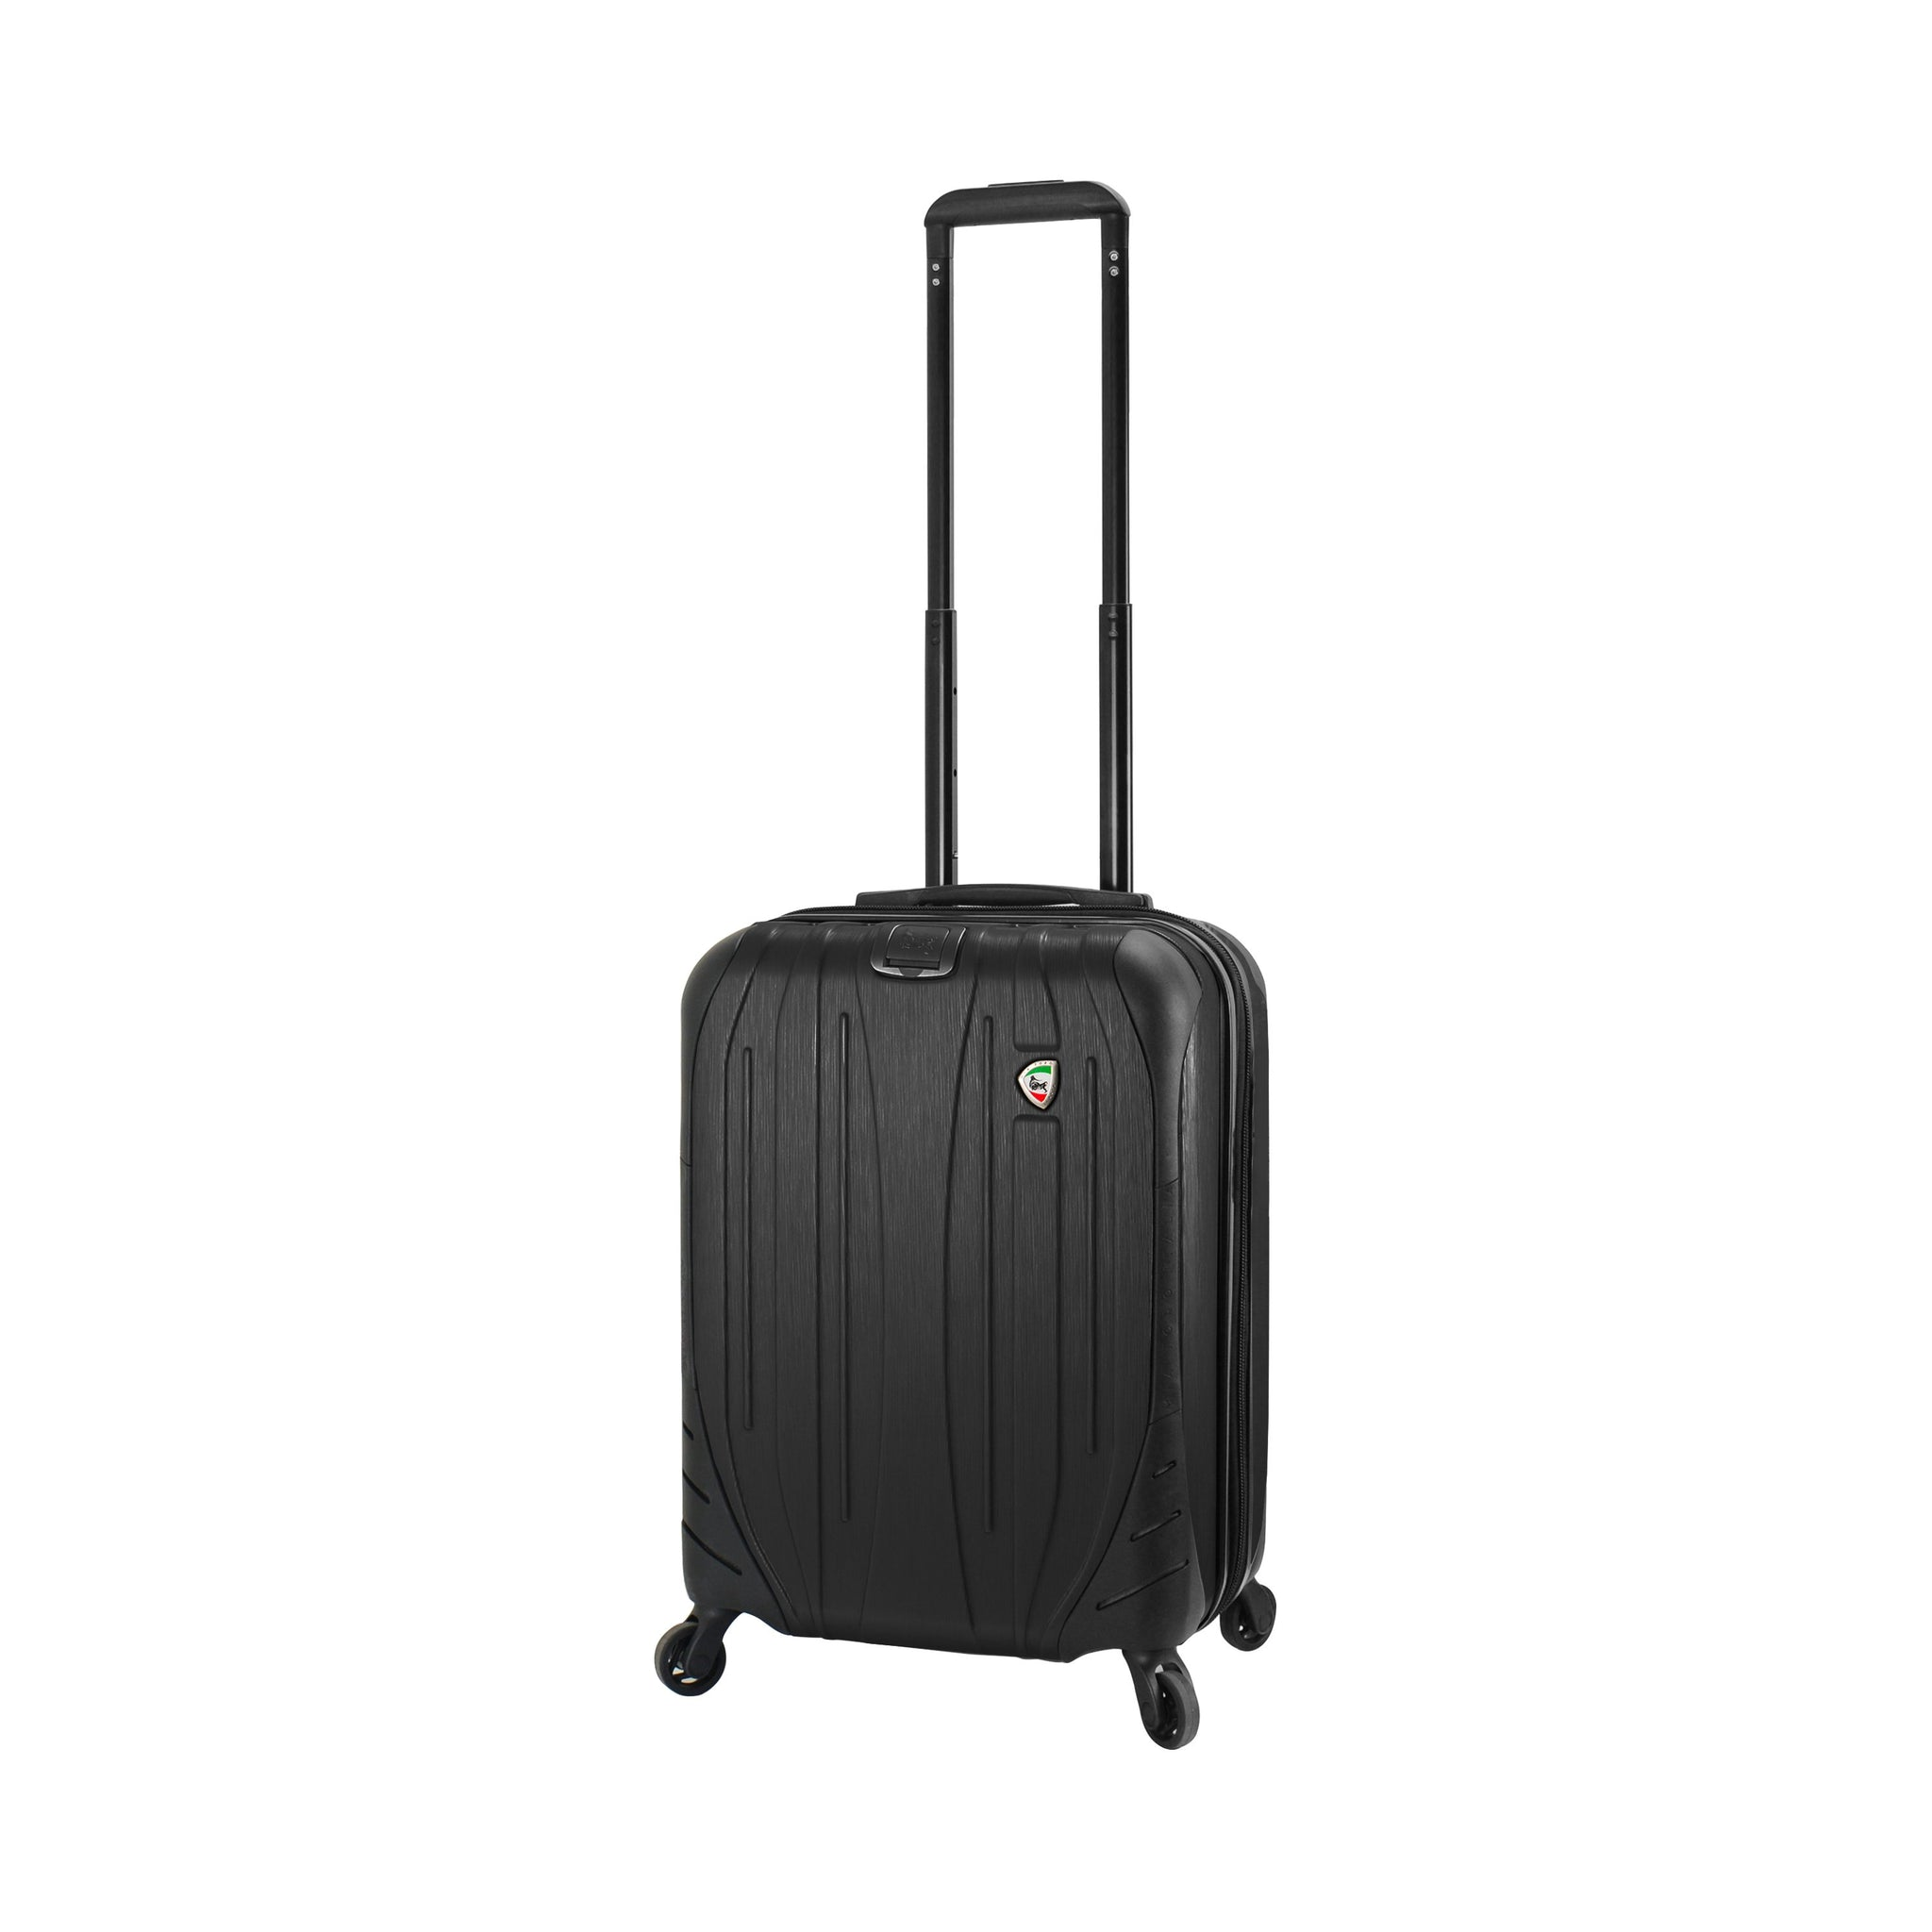 Mia Toro ITALY Ferro Hardside Spinner Carry-On	Luggage